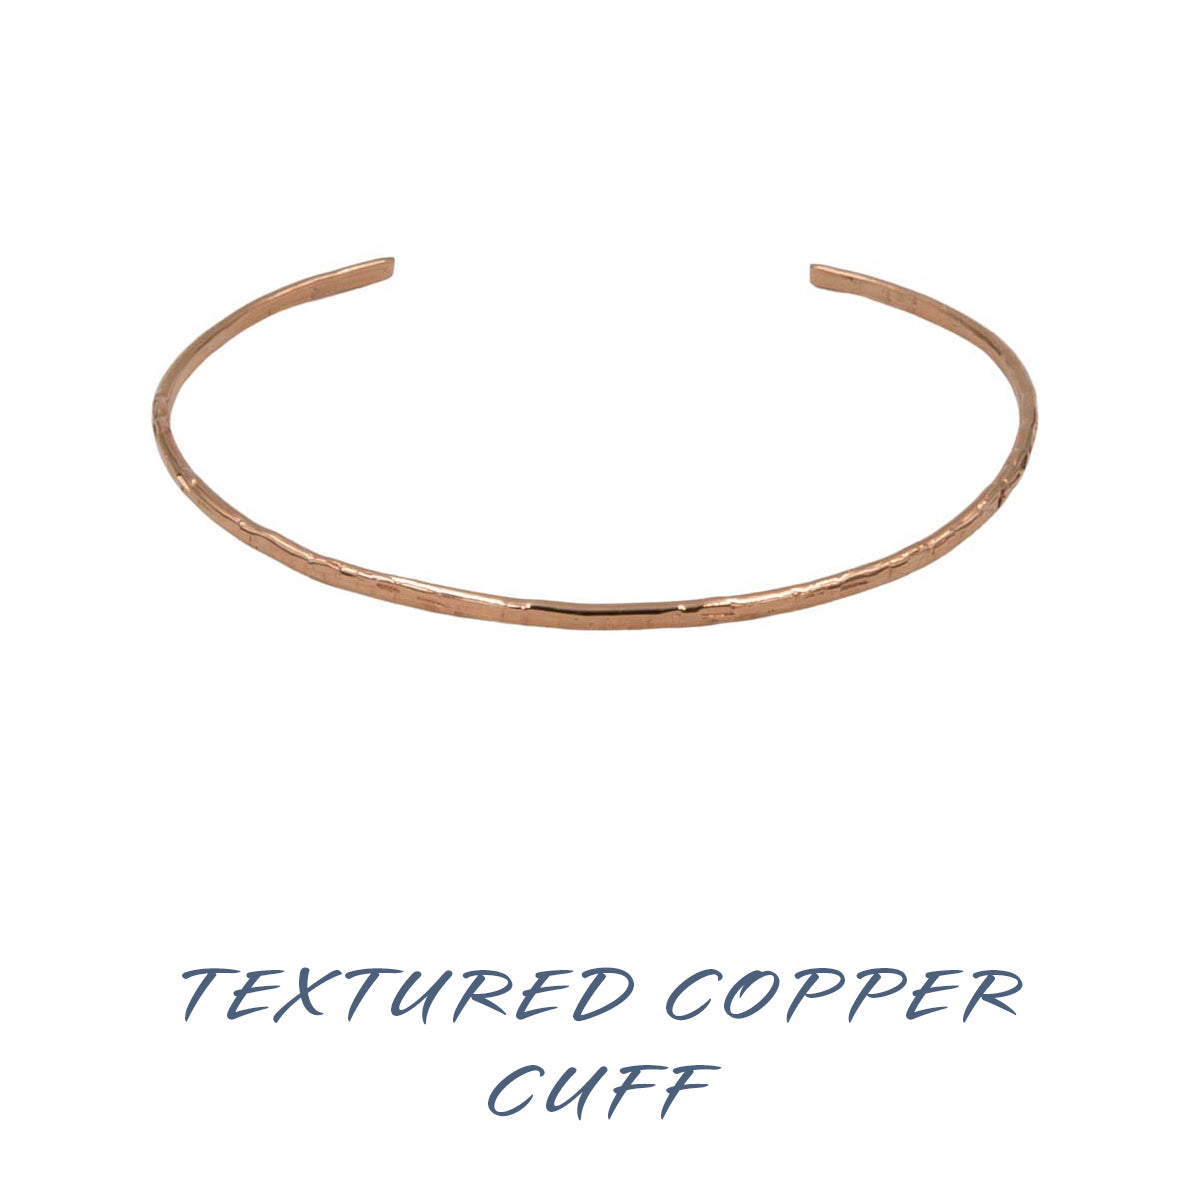 Handmade Hammered Copper Cuff Bracelet  One-Size-Fits-All  Quality Craftsmanship